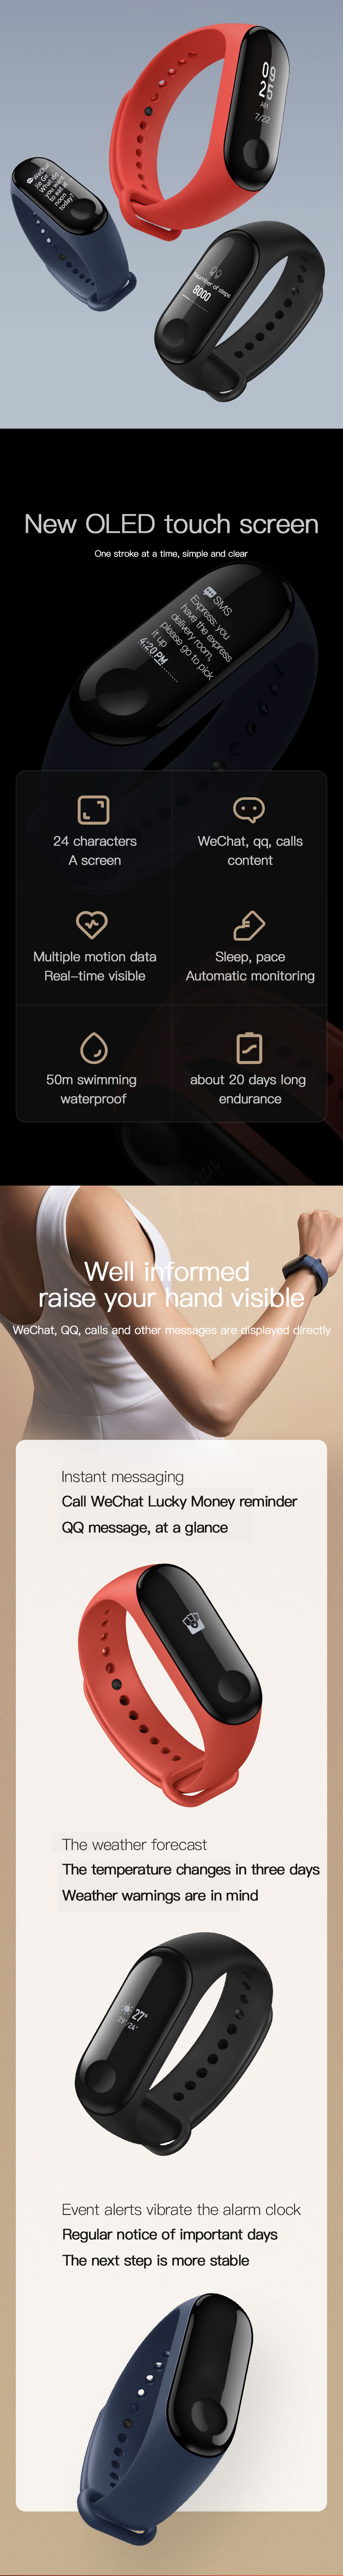 Original Xiaomi Mi band 3 Smart Watch OLED Display Heart Rate Monitor Bracelet International Version